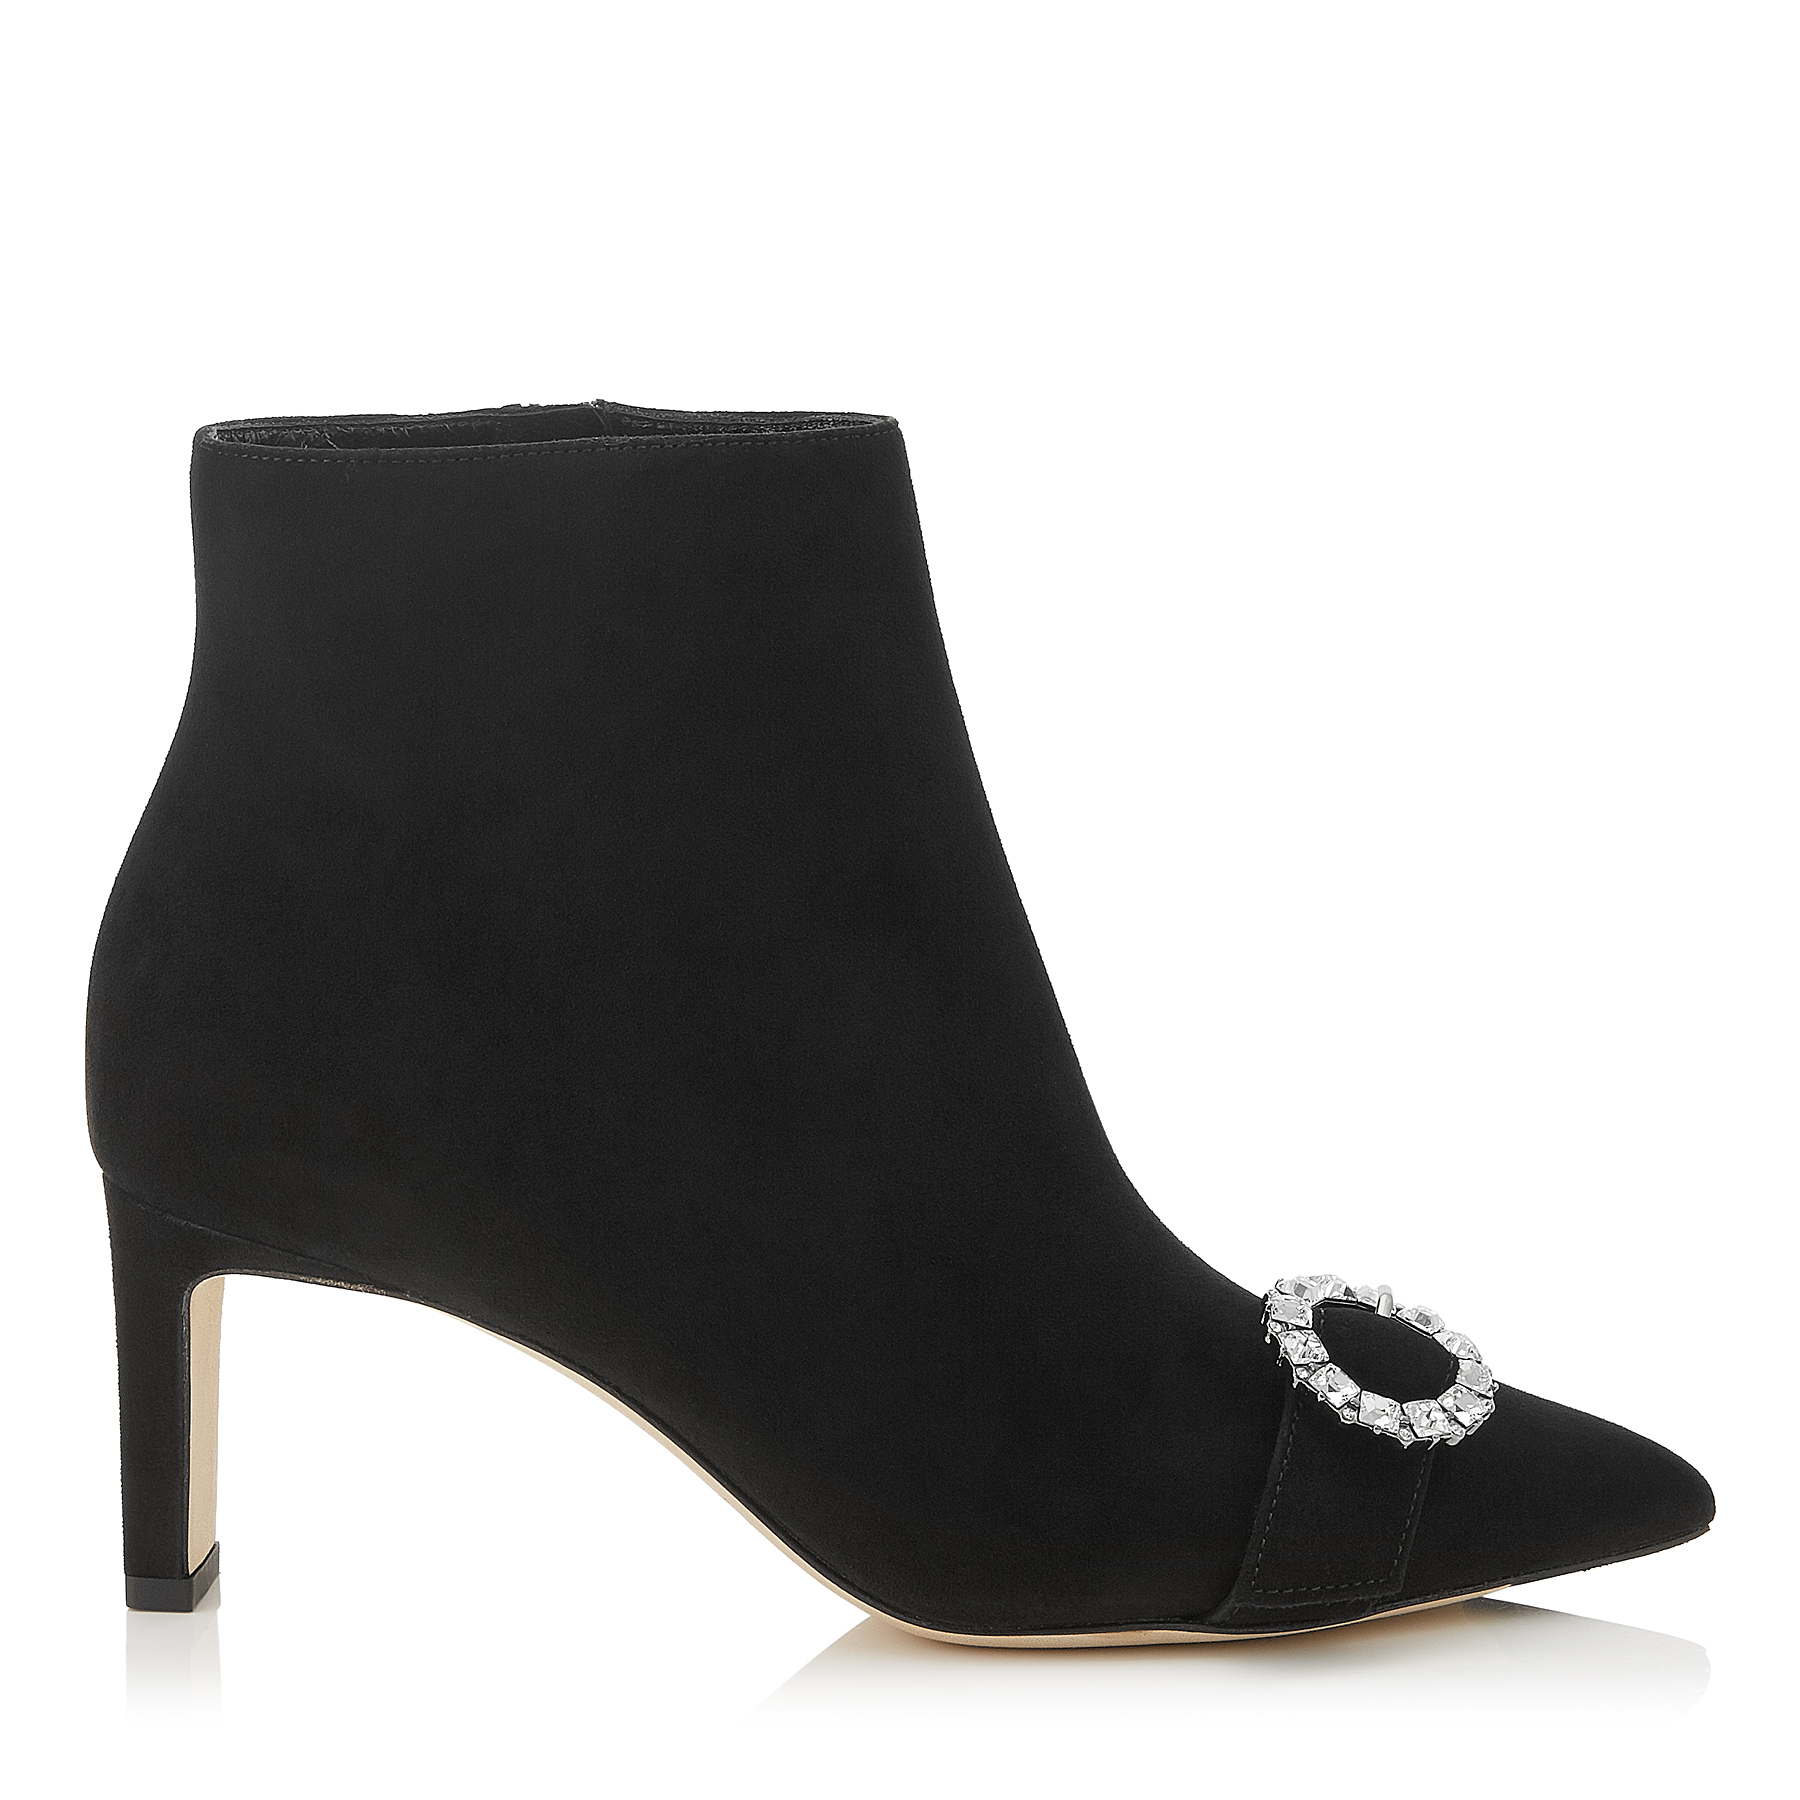 HANOVER 65 Black Suede Booties with Crystal Buckle by Jimmy Choo